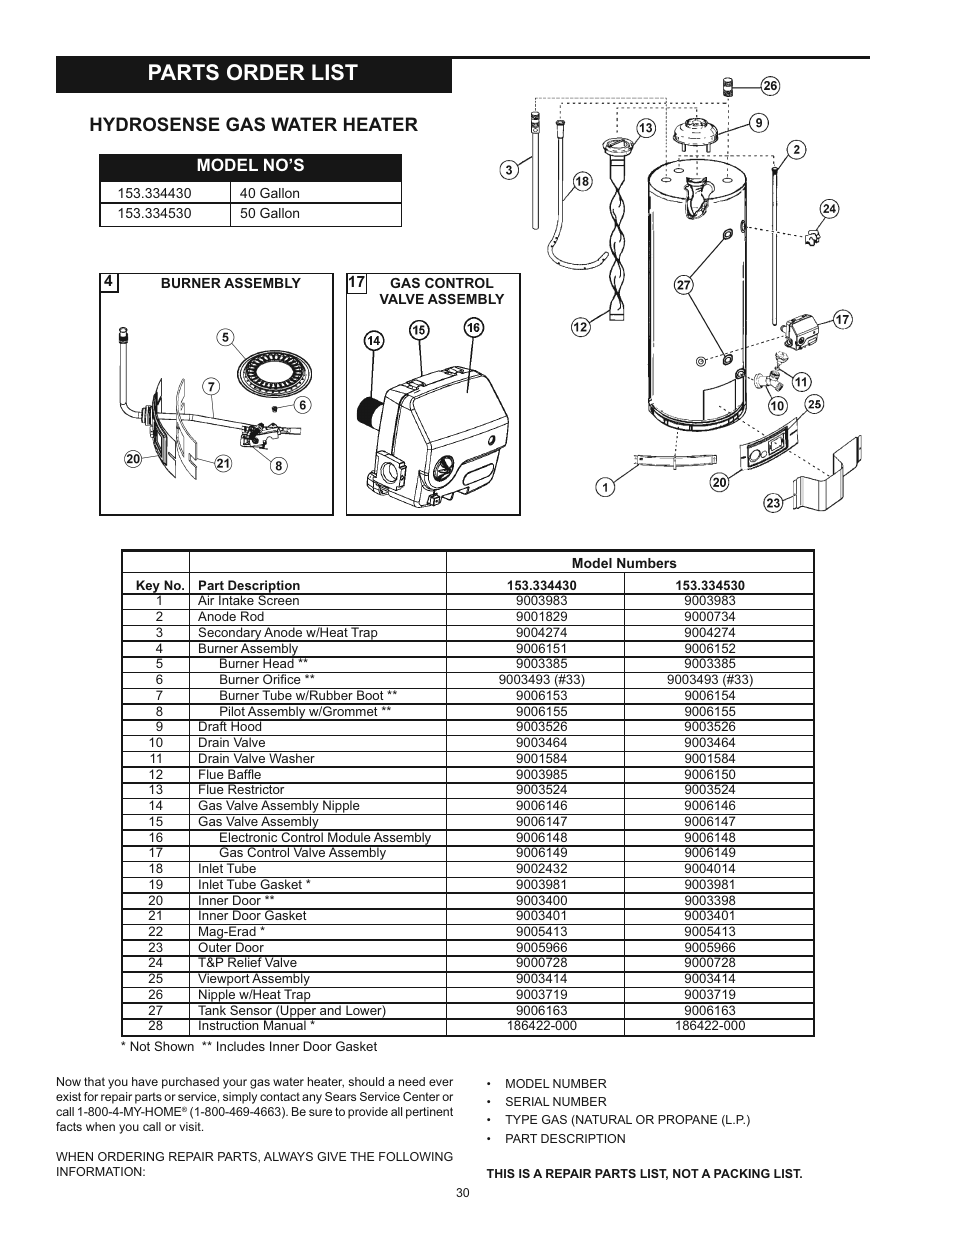 Parts order list, Hydrosense gas water heater, Model no's